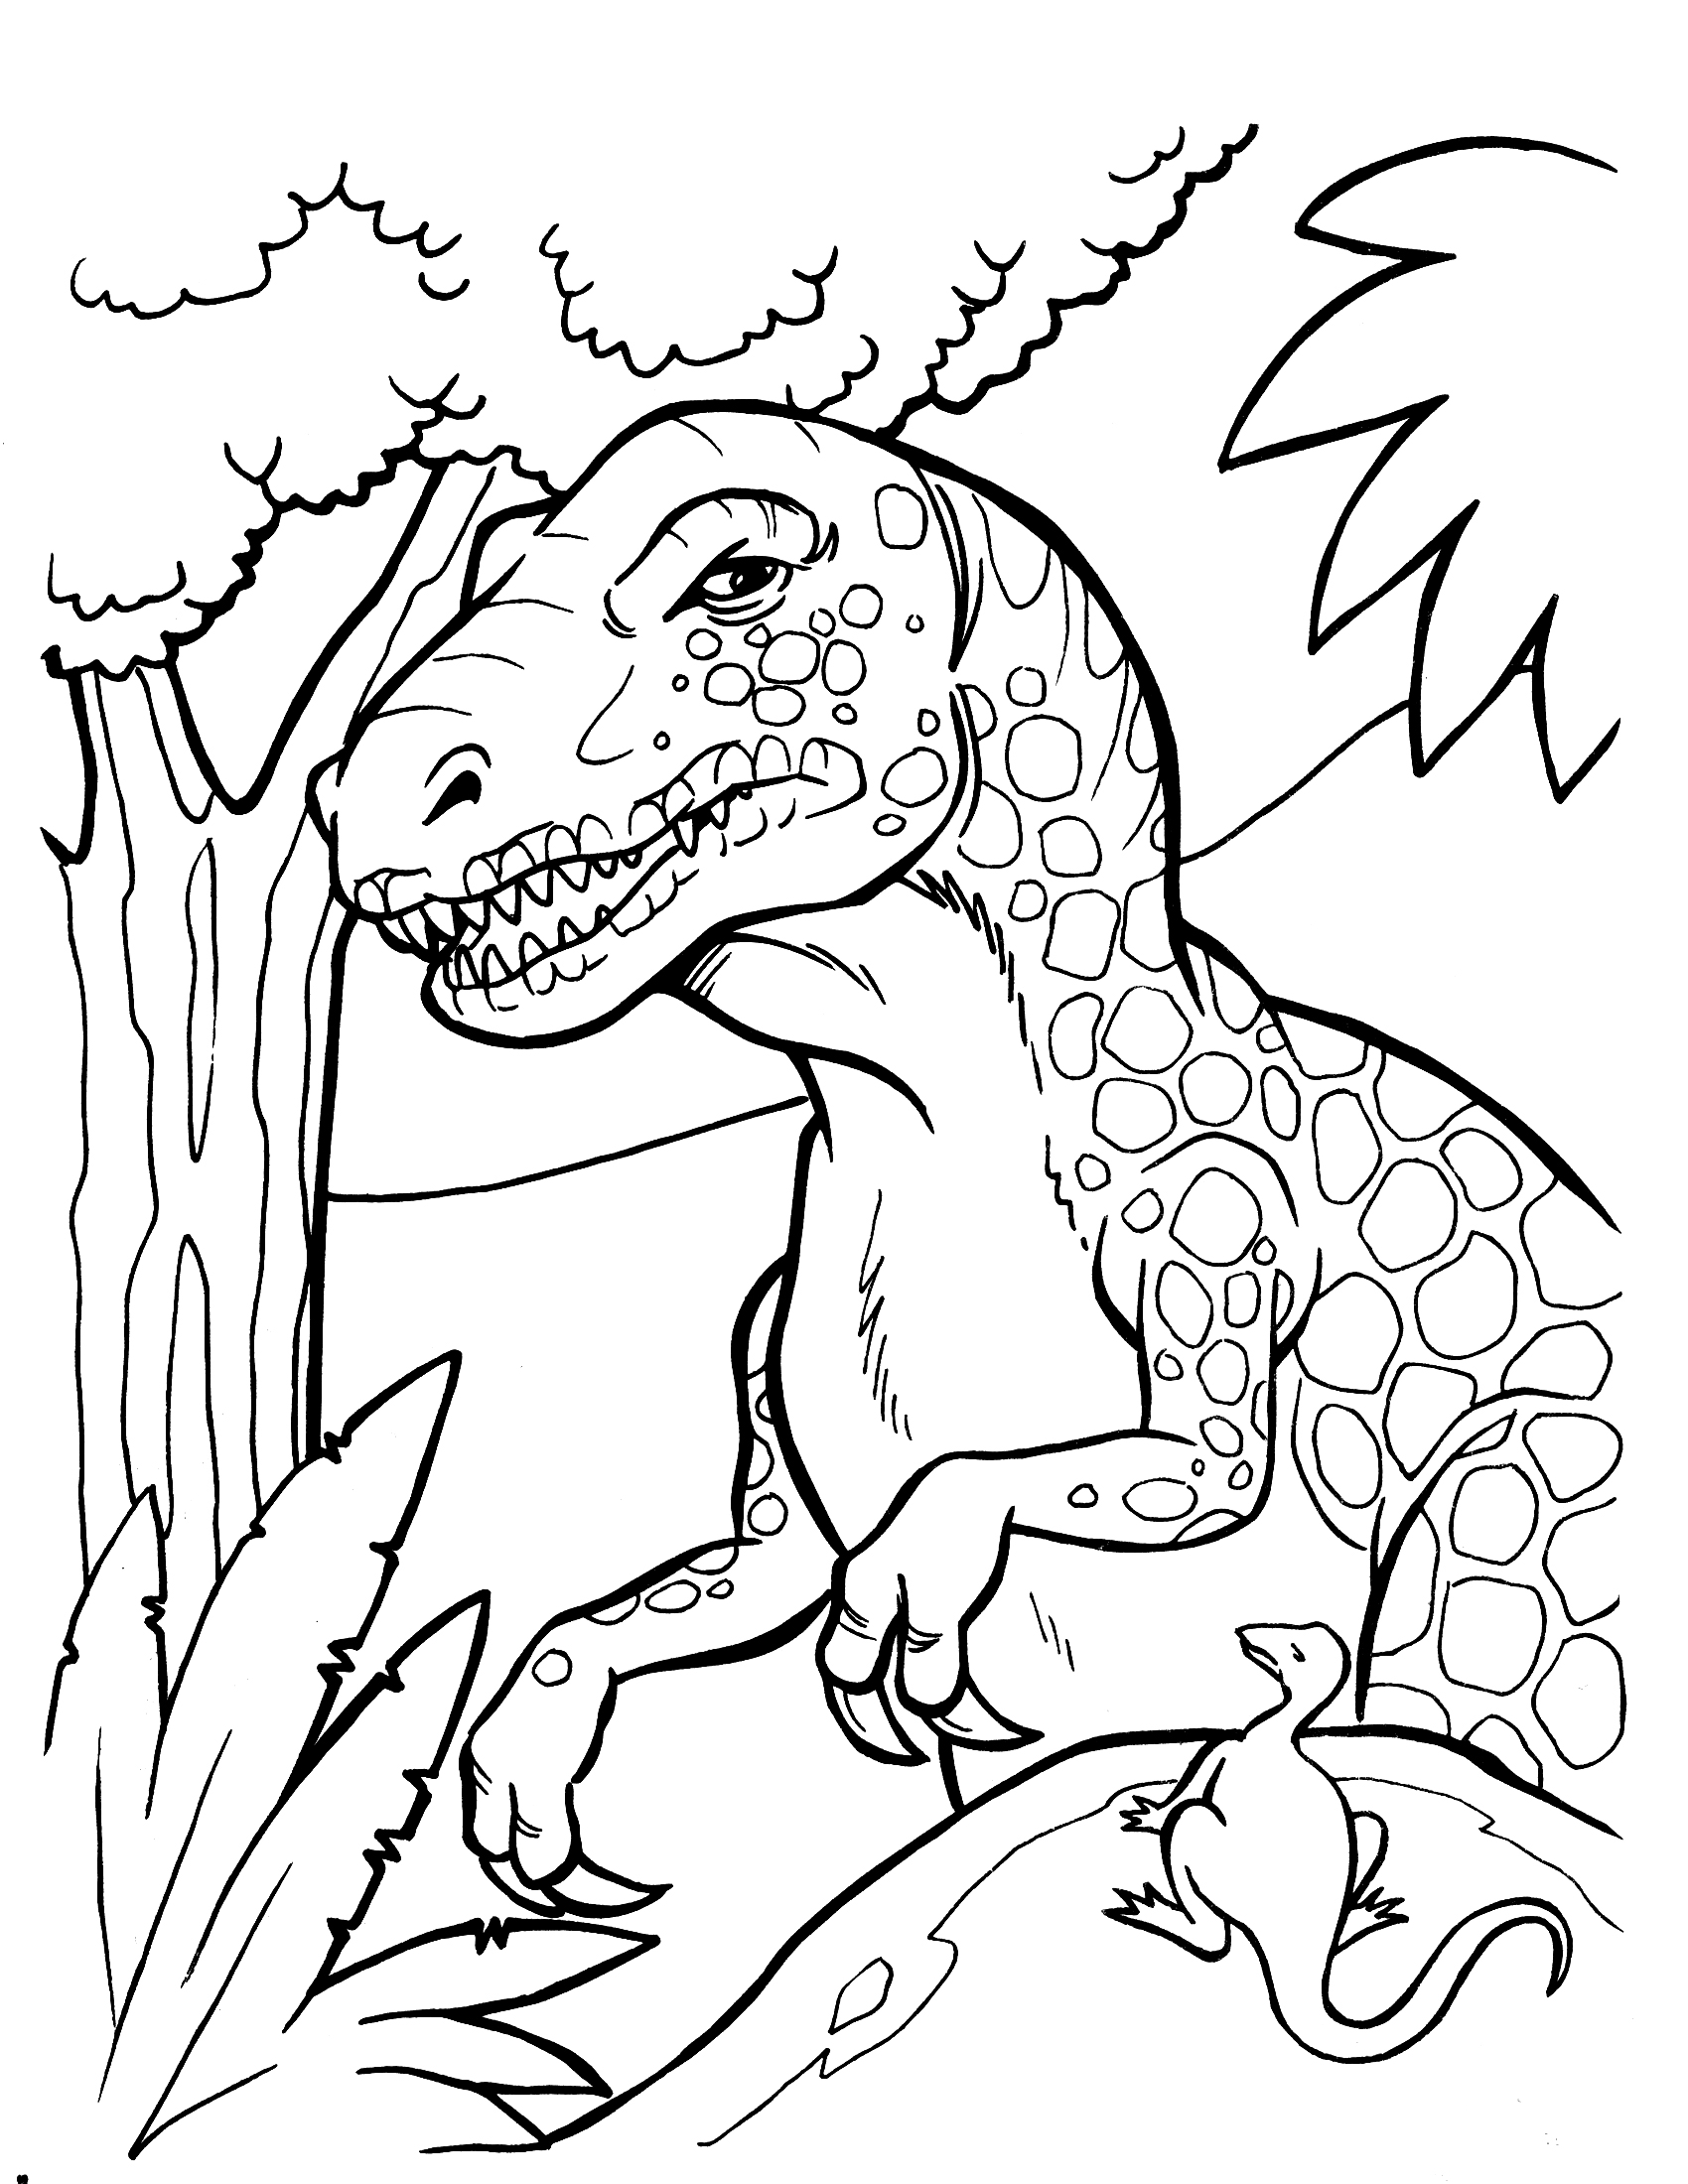 coloring pages printables free - dinosaur coloring pages 360coloringpages